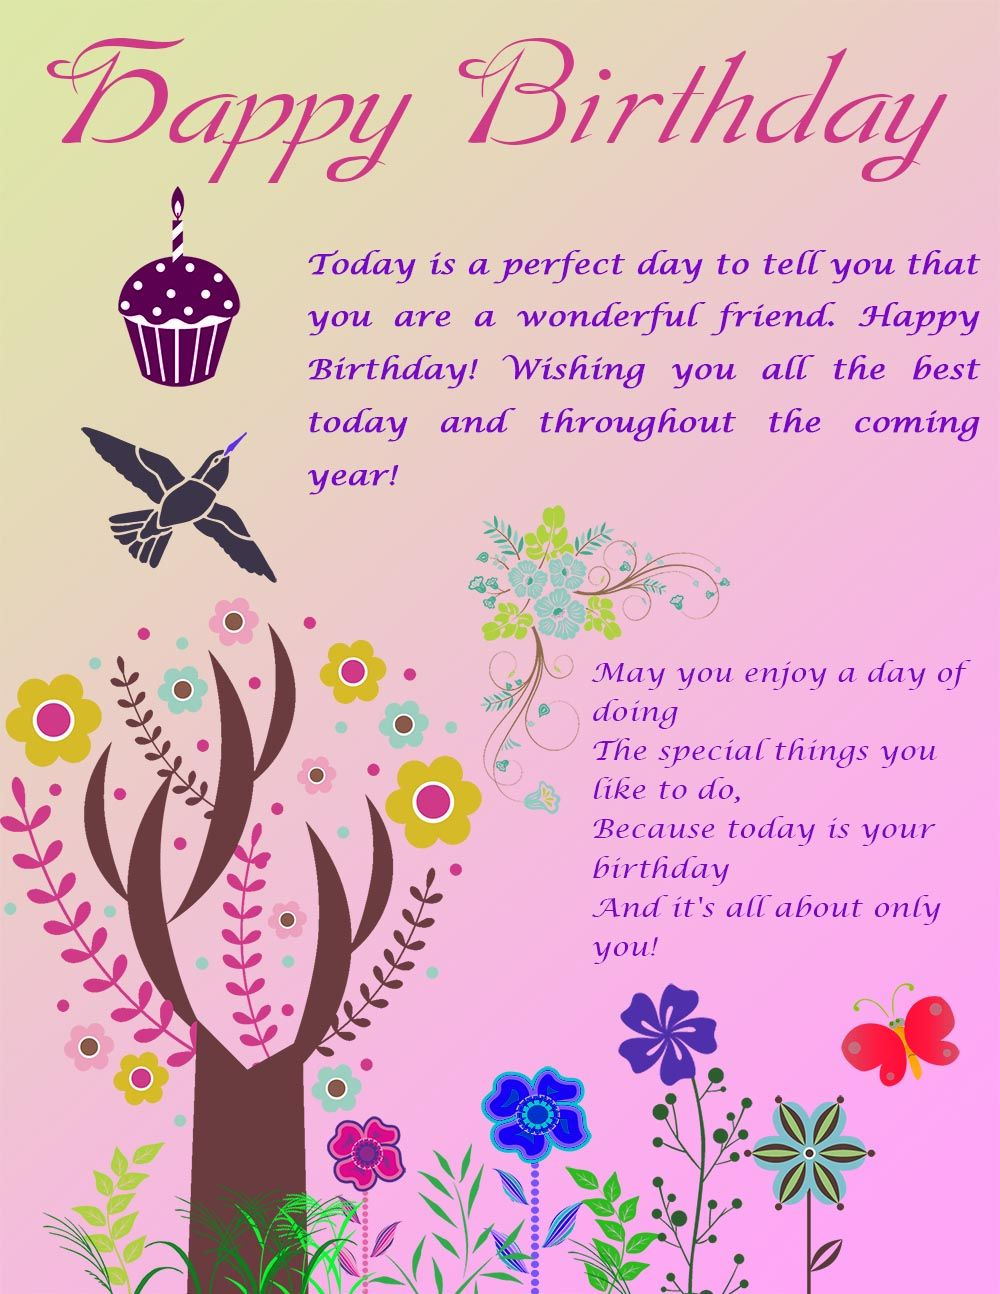 Happy birthday ecard happy birthday pinterest happy birthday happy birthday ecard m4hsunfo Gallery